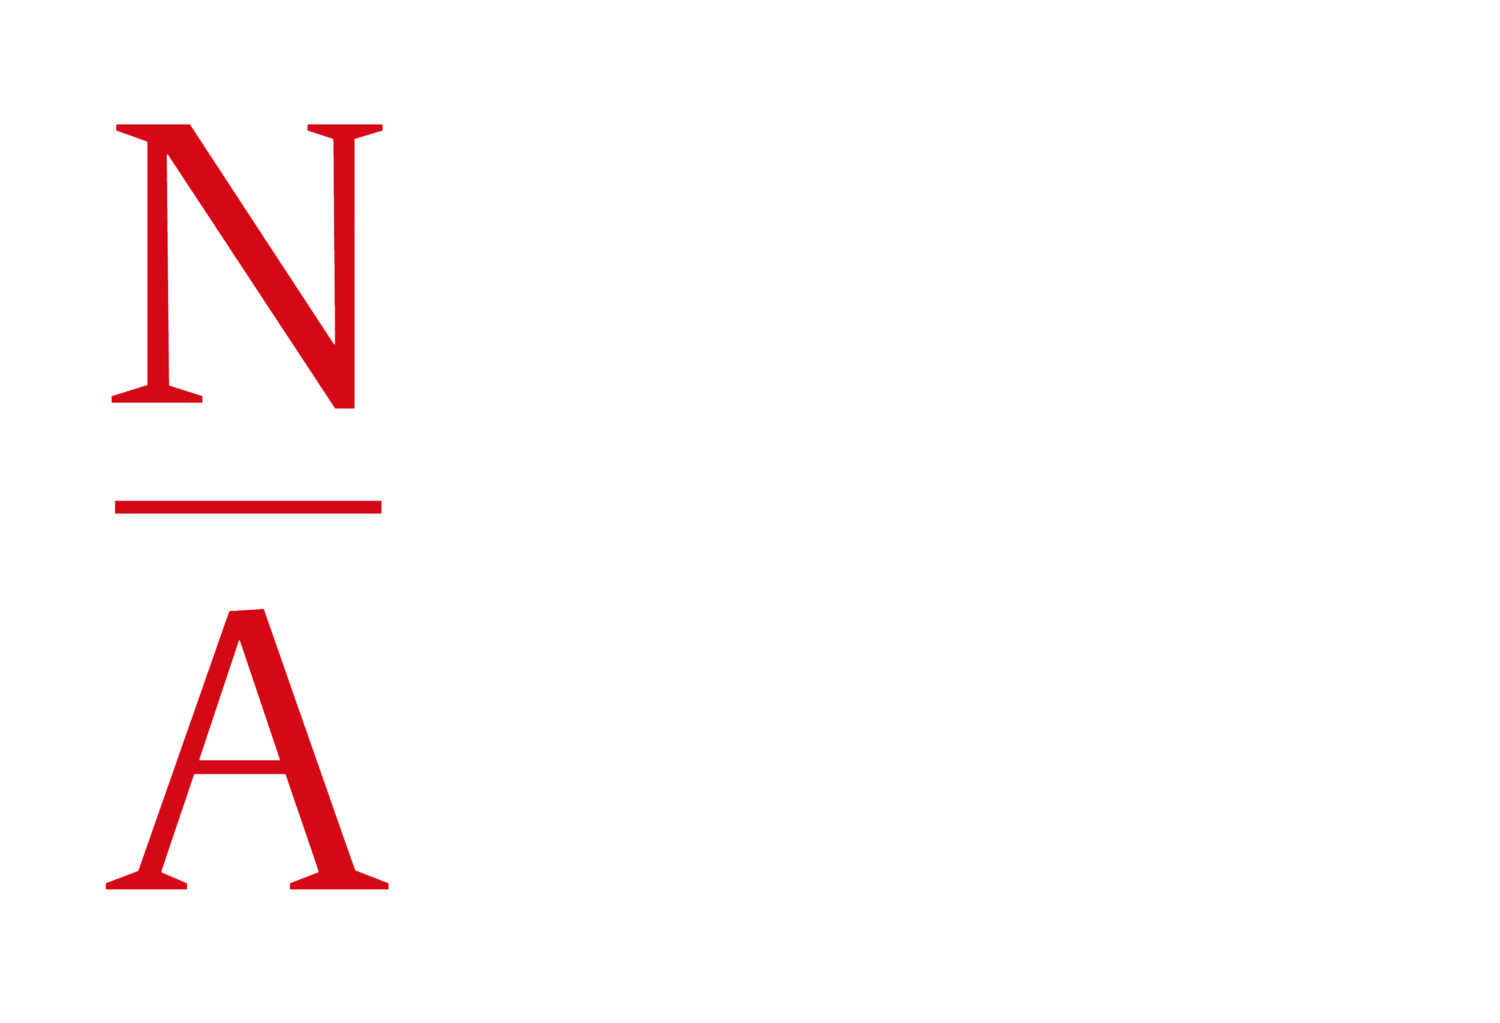 National Academy of Design